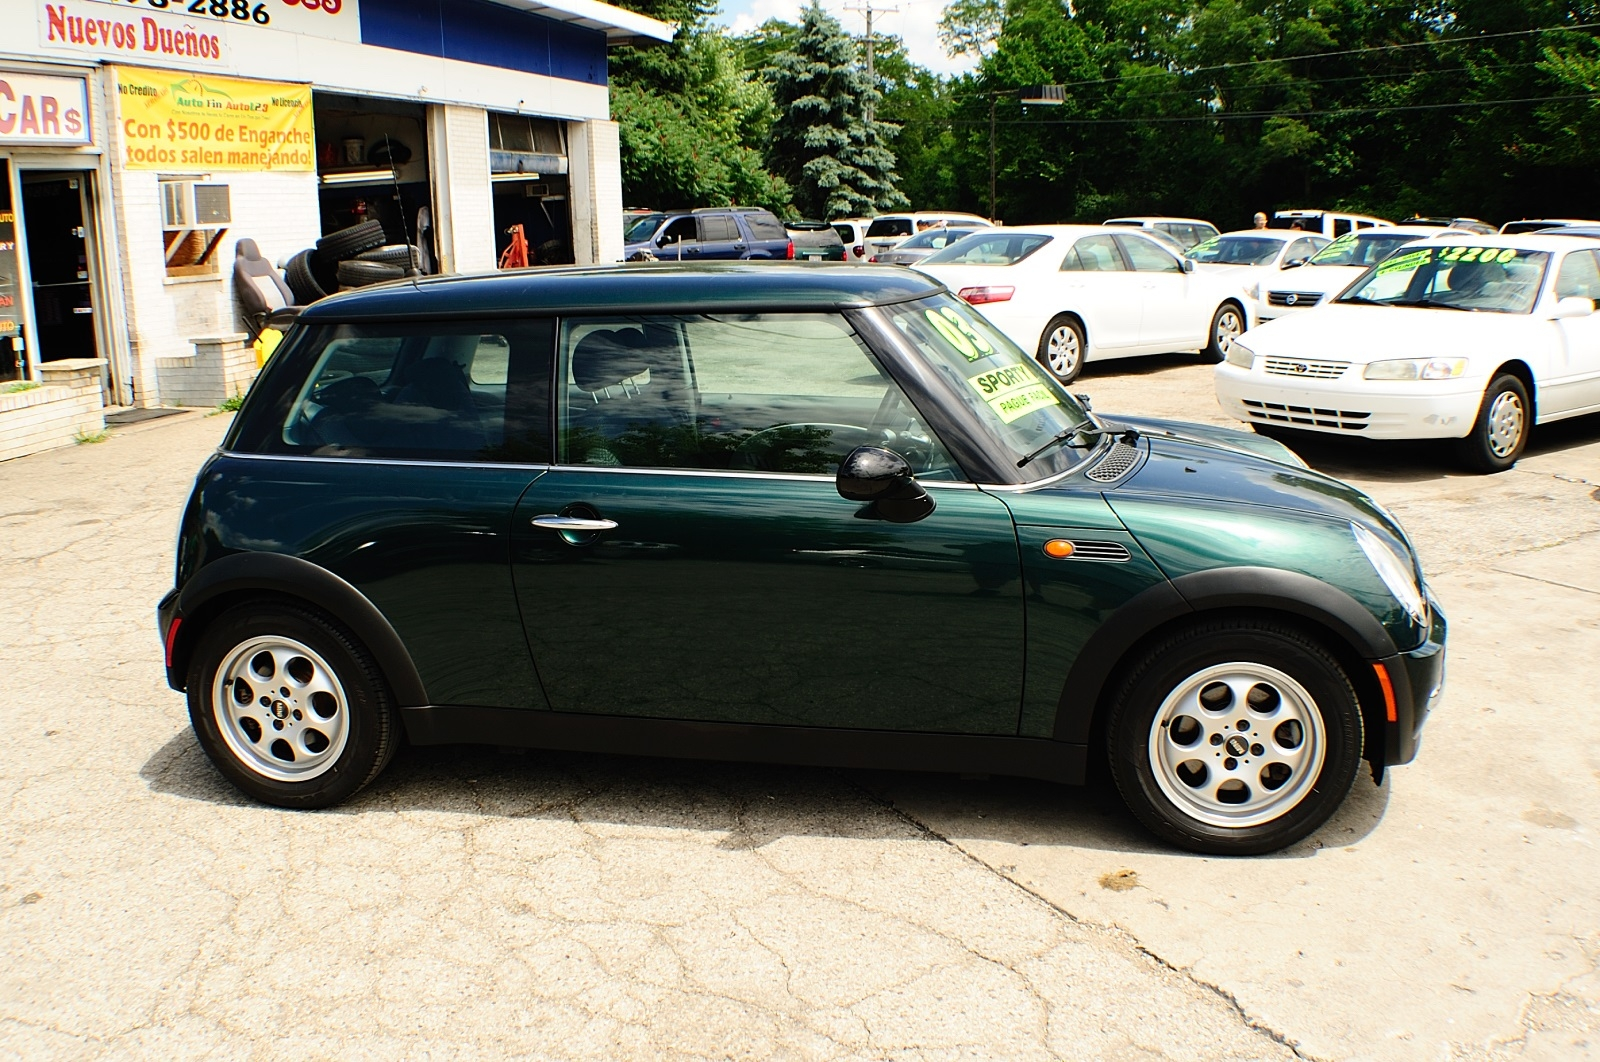 2003 Mini Cooper Green Used Sport Coupe used car sale Addison Algonquin Arlington Heights Bartlett